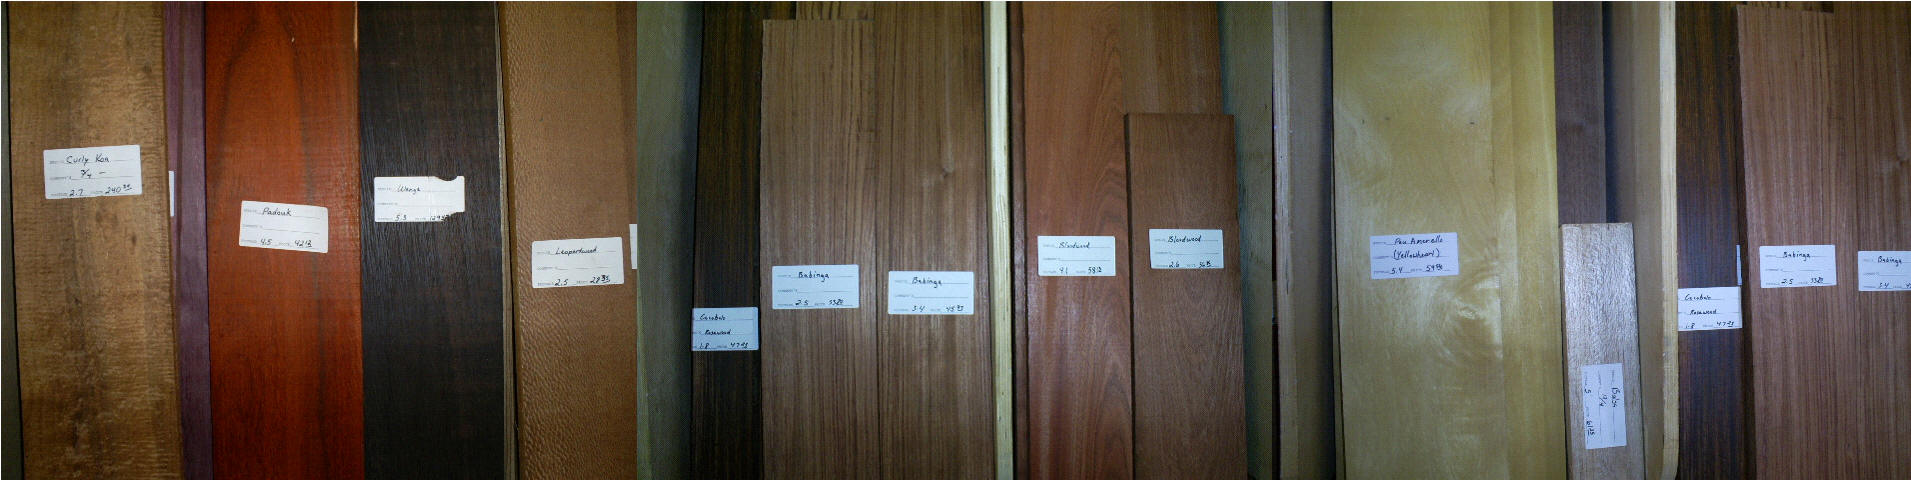 ... 15 varieties of exotic lumber click the picture to see larger image